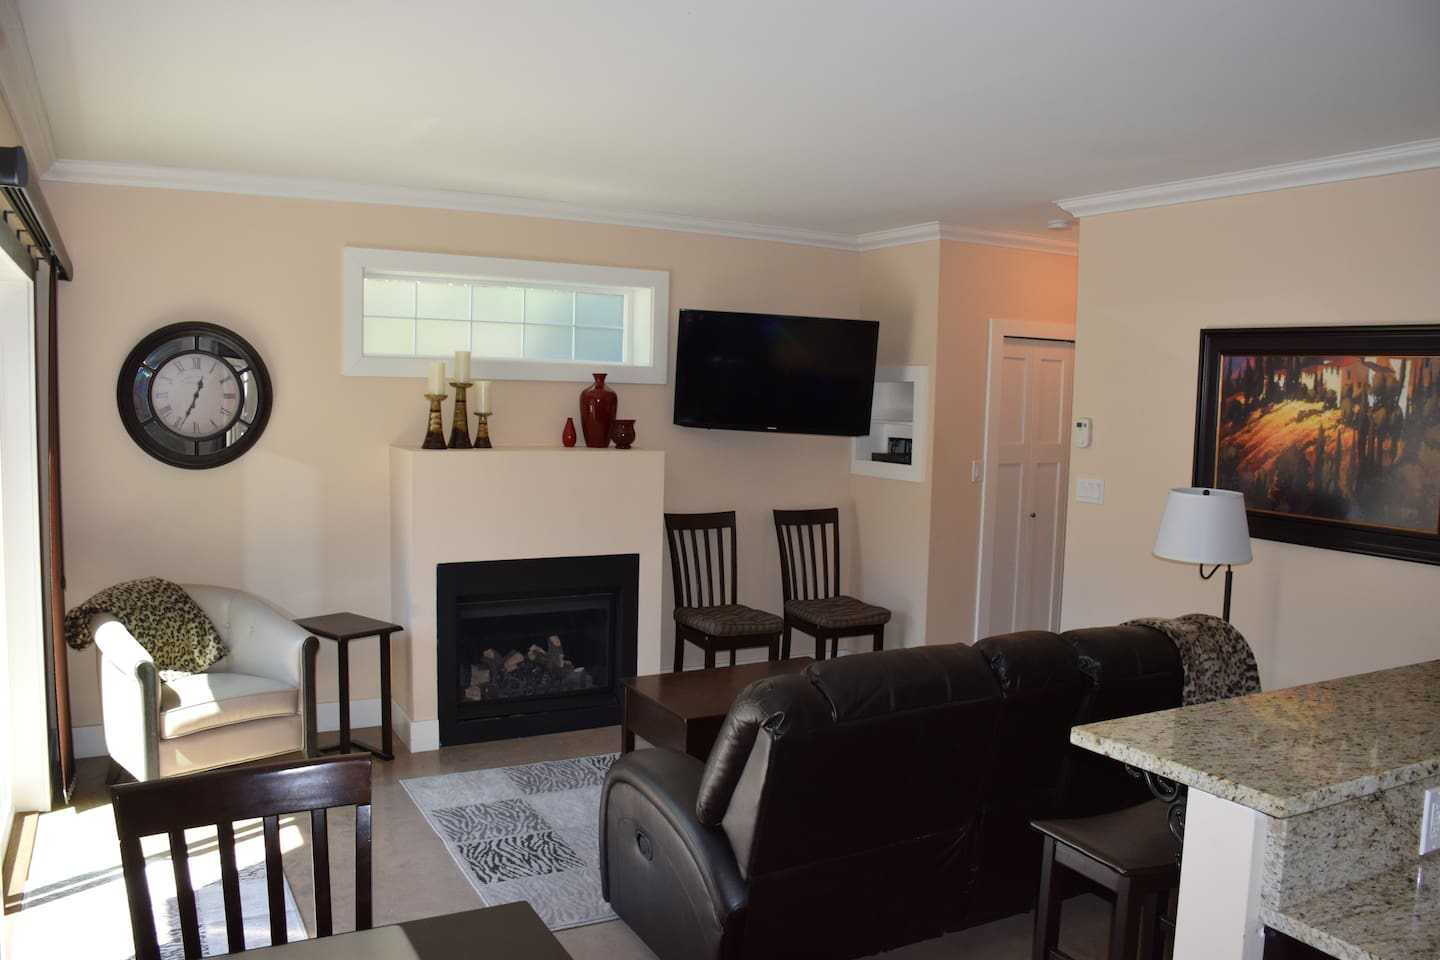 Cable TV, natural gas fireplace, comfortable lazyboy loveseat, heated floors in the bright living room.